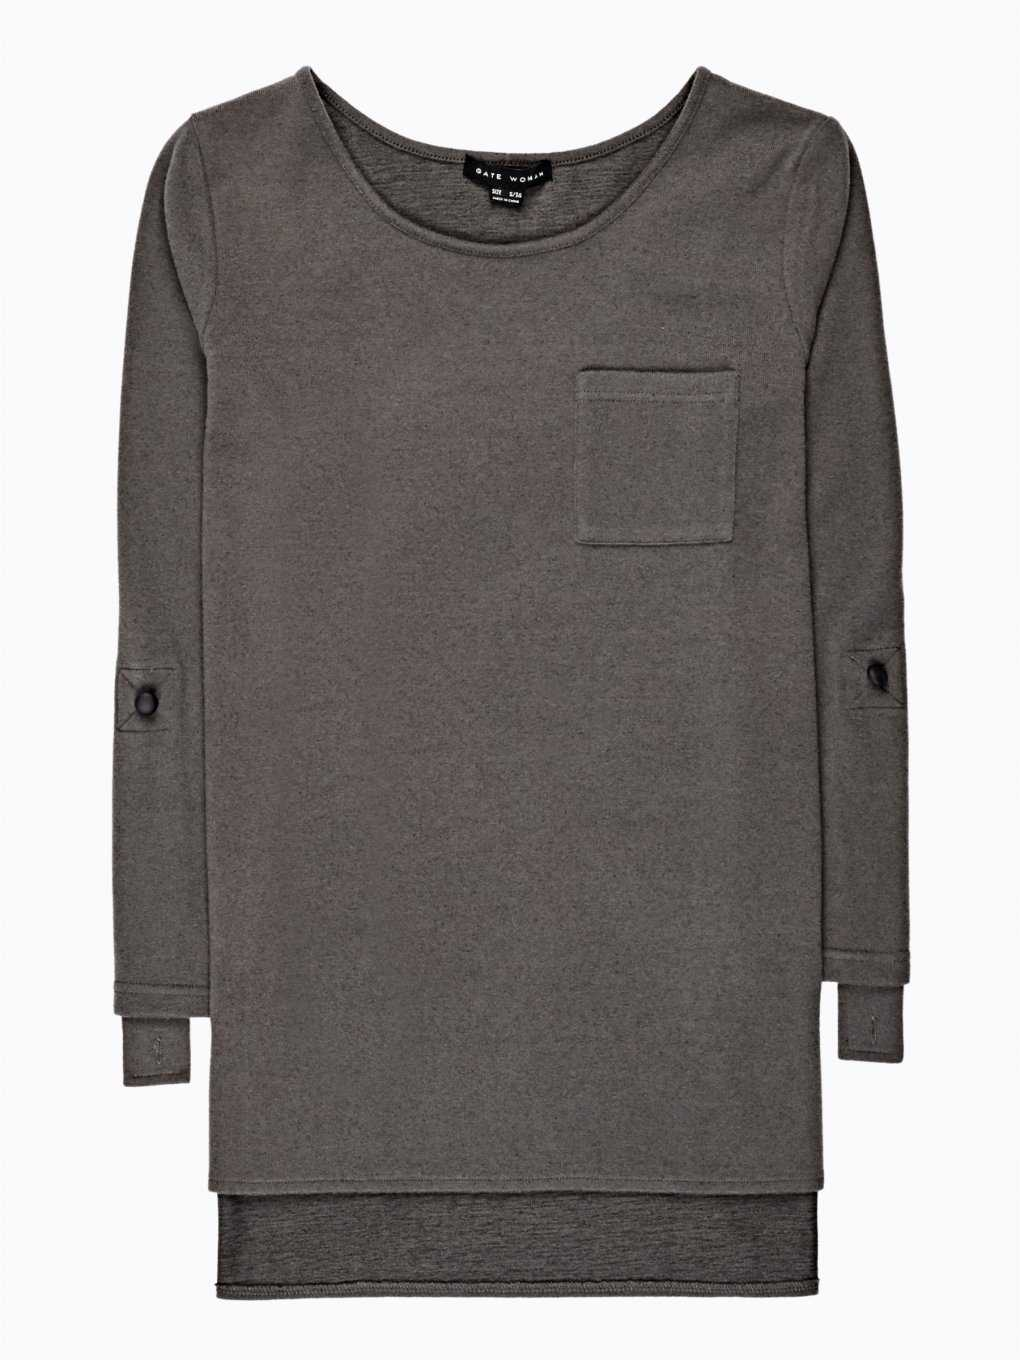 LONGLINE TOP WITH POCKET